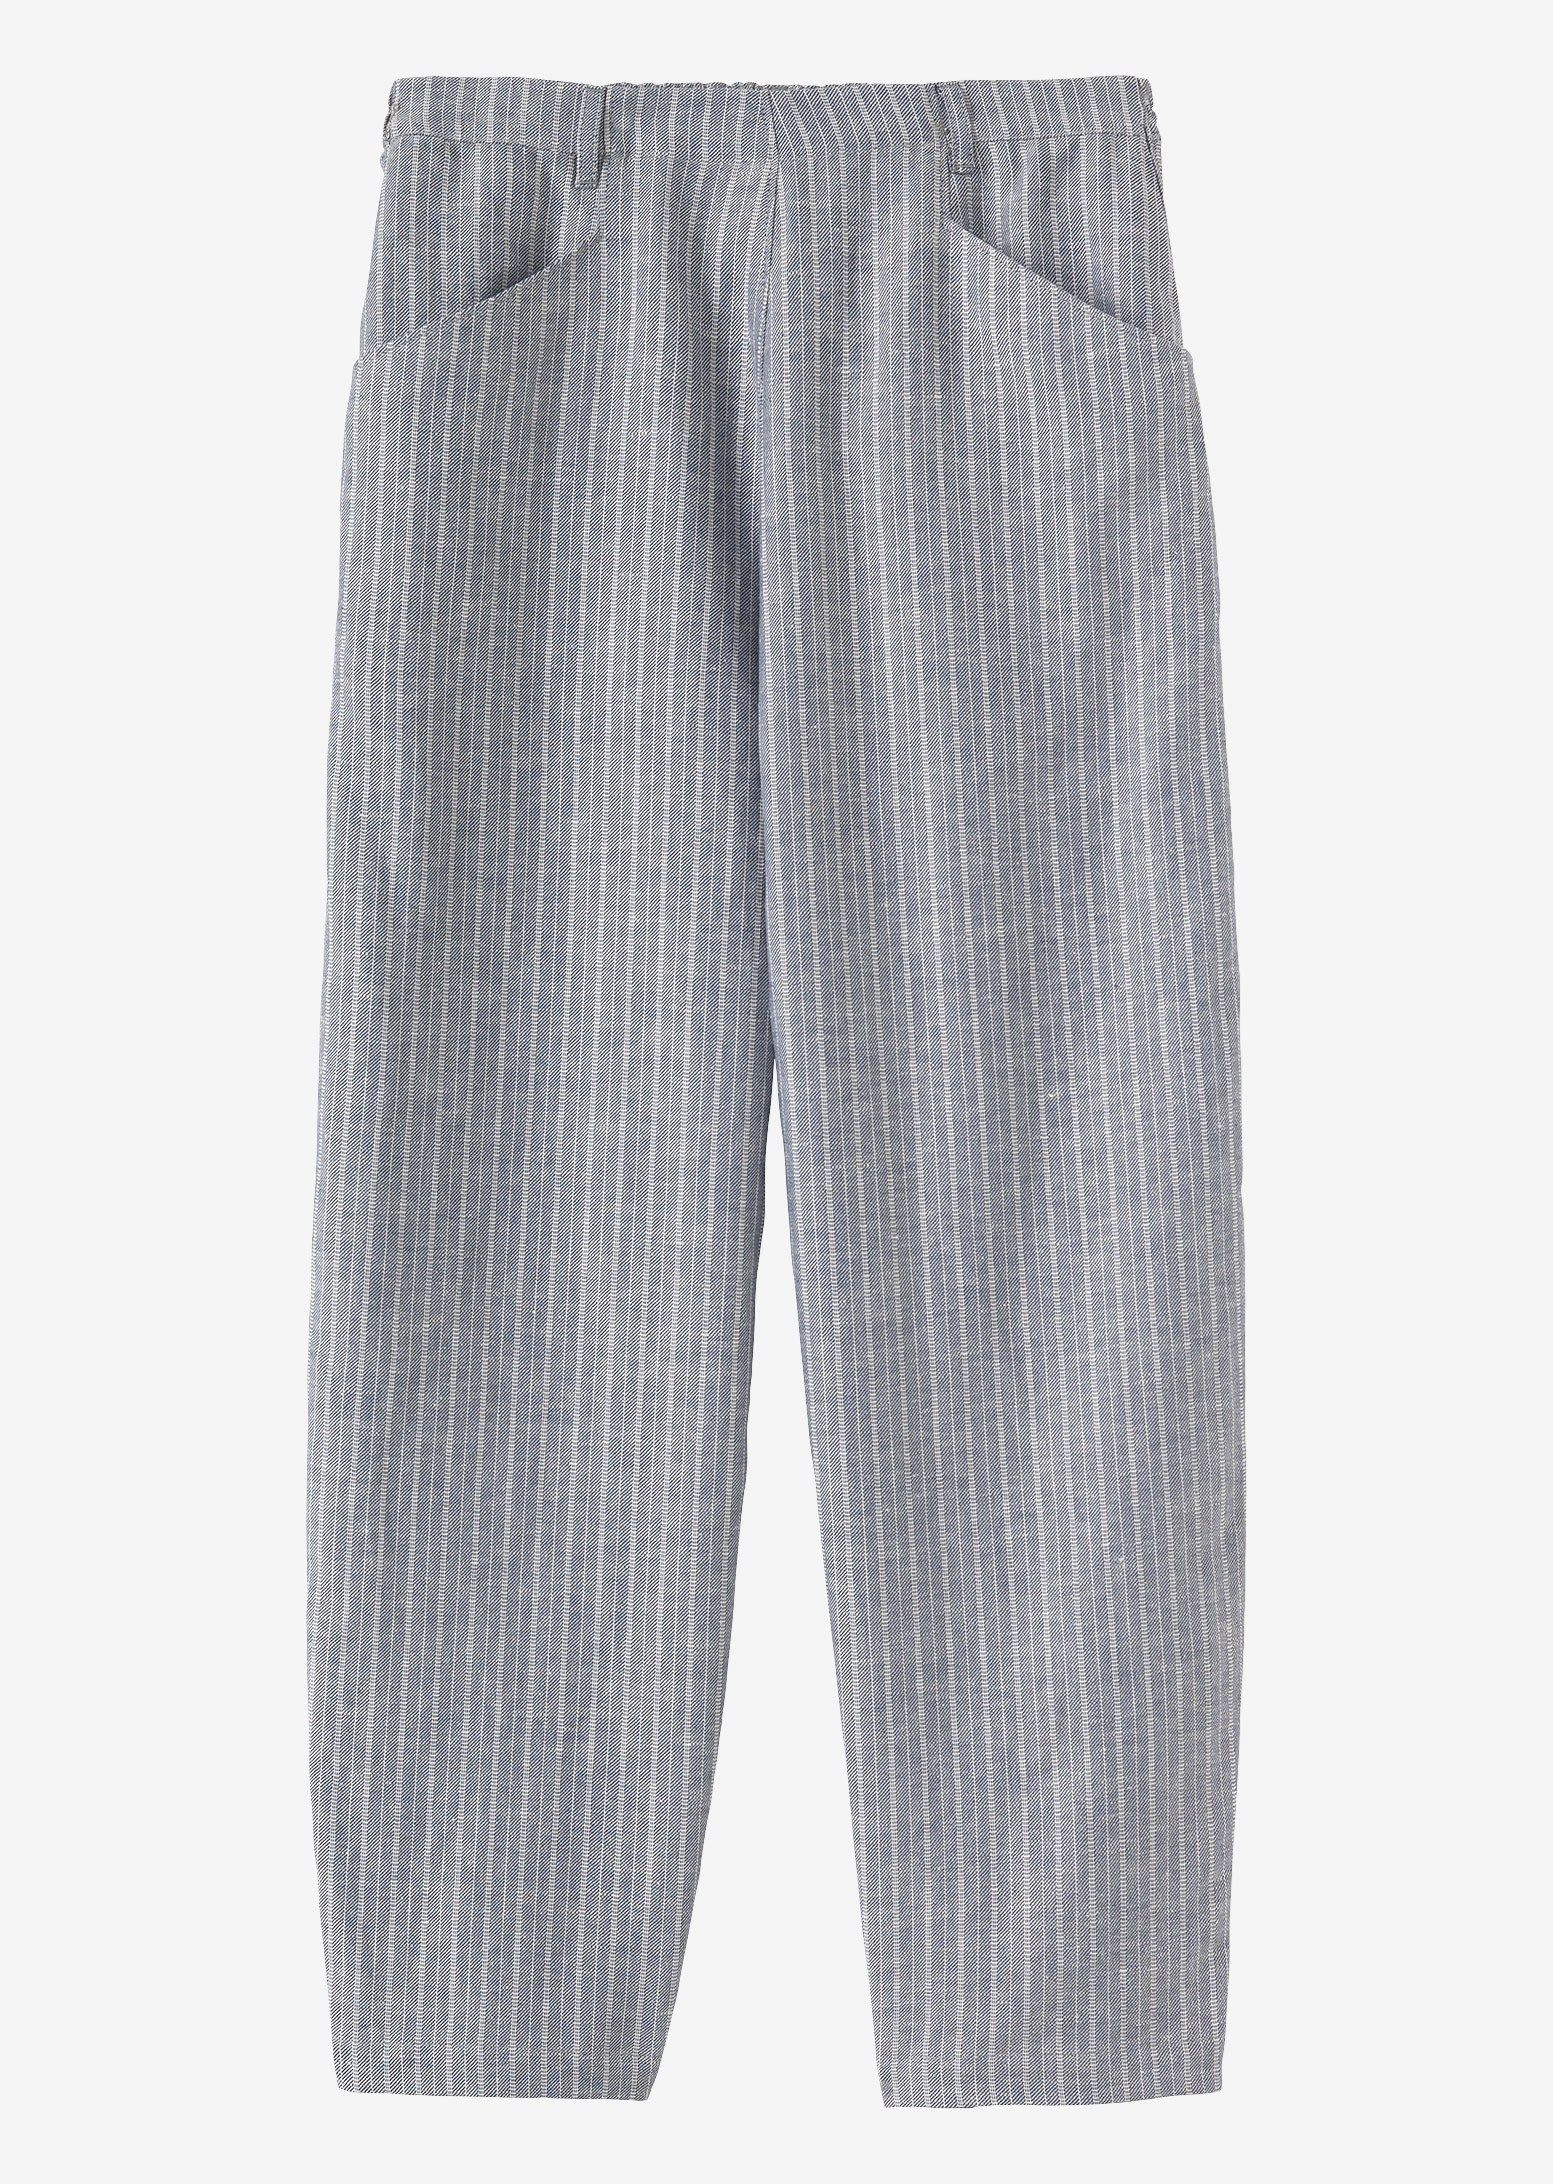 a2134a87e8a6f8 Supple, midweight, linen with a woven crosshatch stripe. Flat front,  elasticated at back waistband. Belt loops. Low crotch. Ankle skimming.  Pockets.